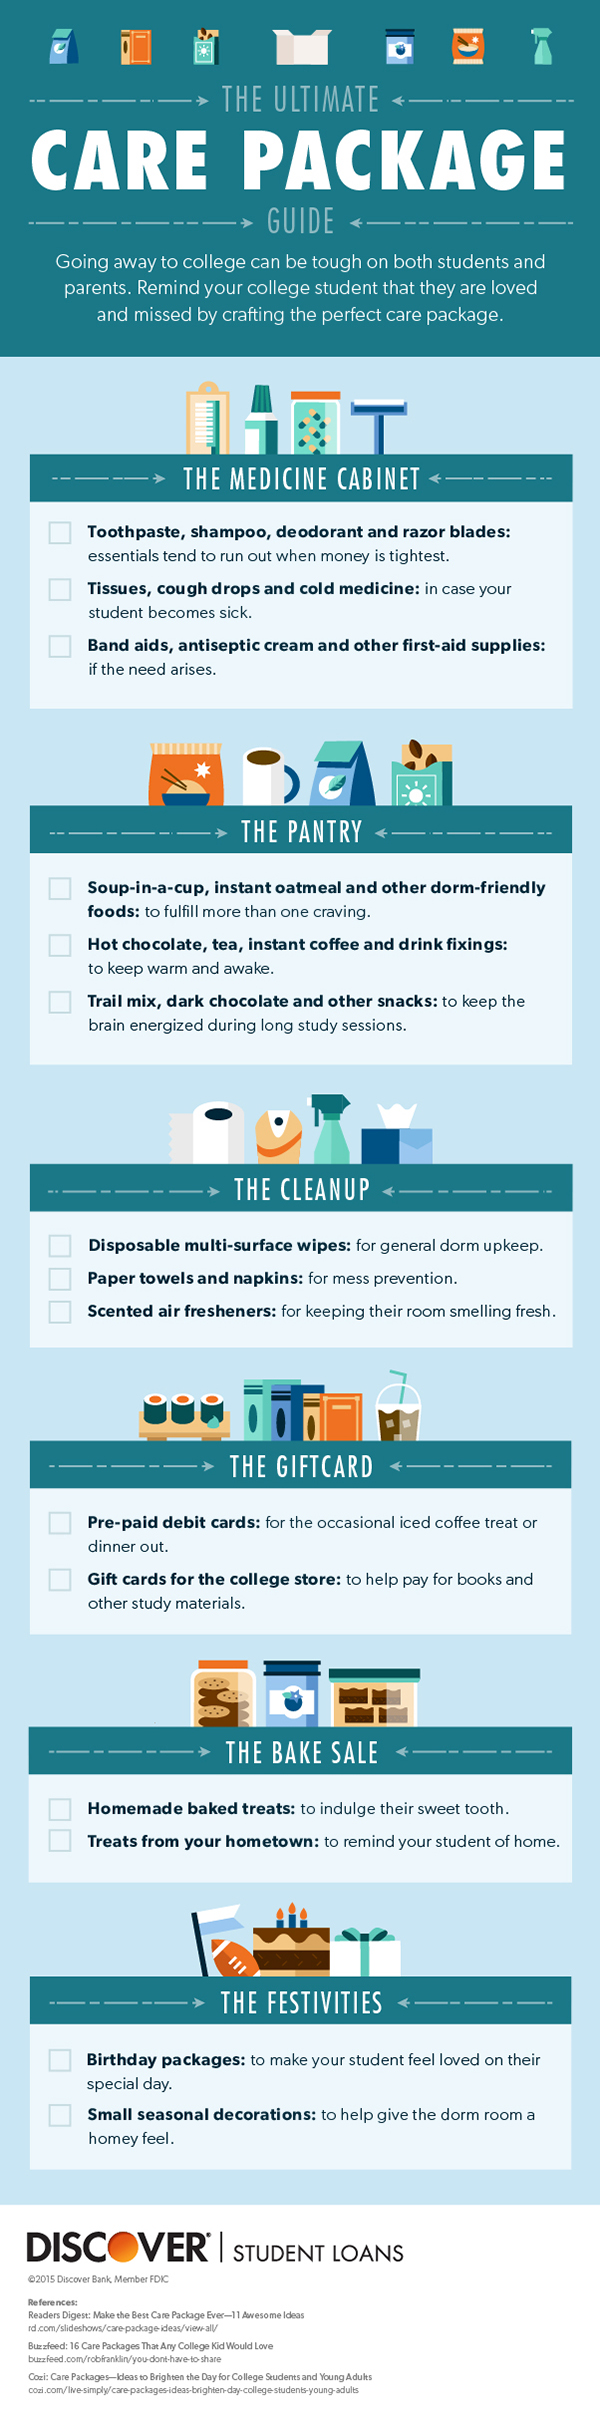 college care package guide dormlife pinterest college gift